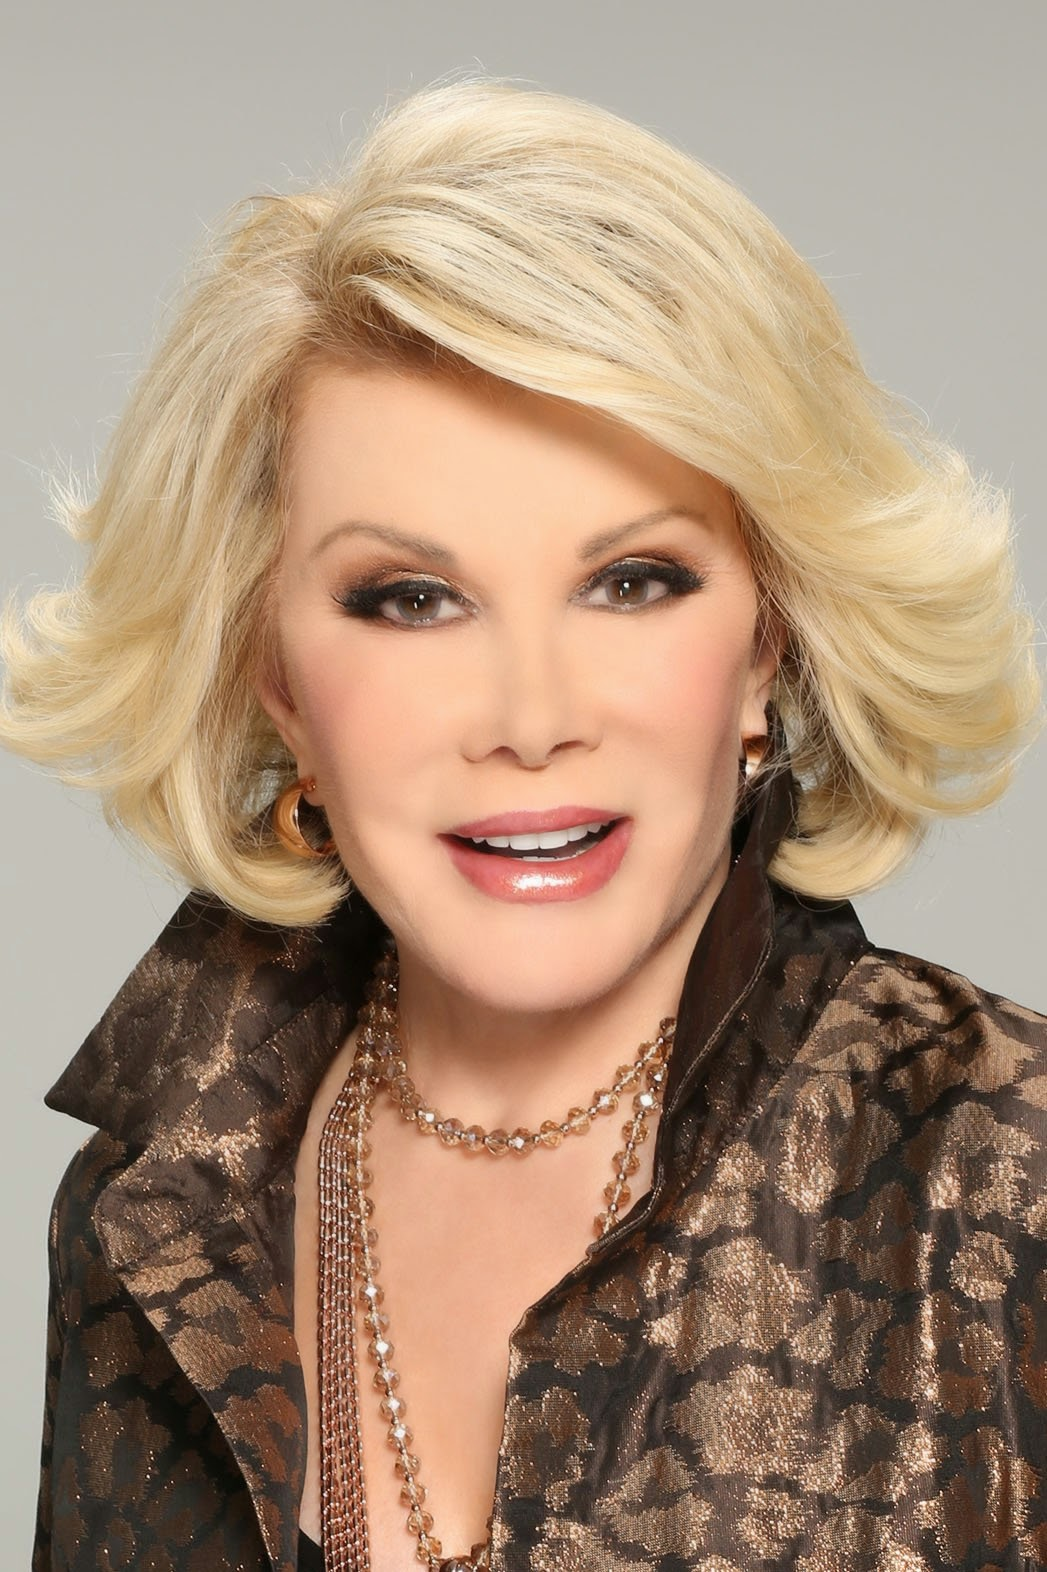 Watch Joan Rivers discuss life, death and dying with her daughter Melissa before surgery.